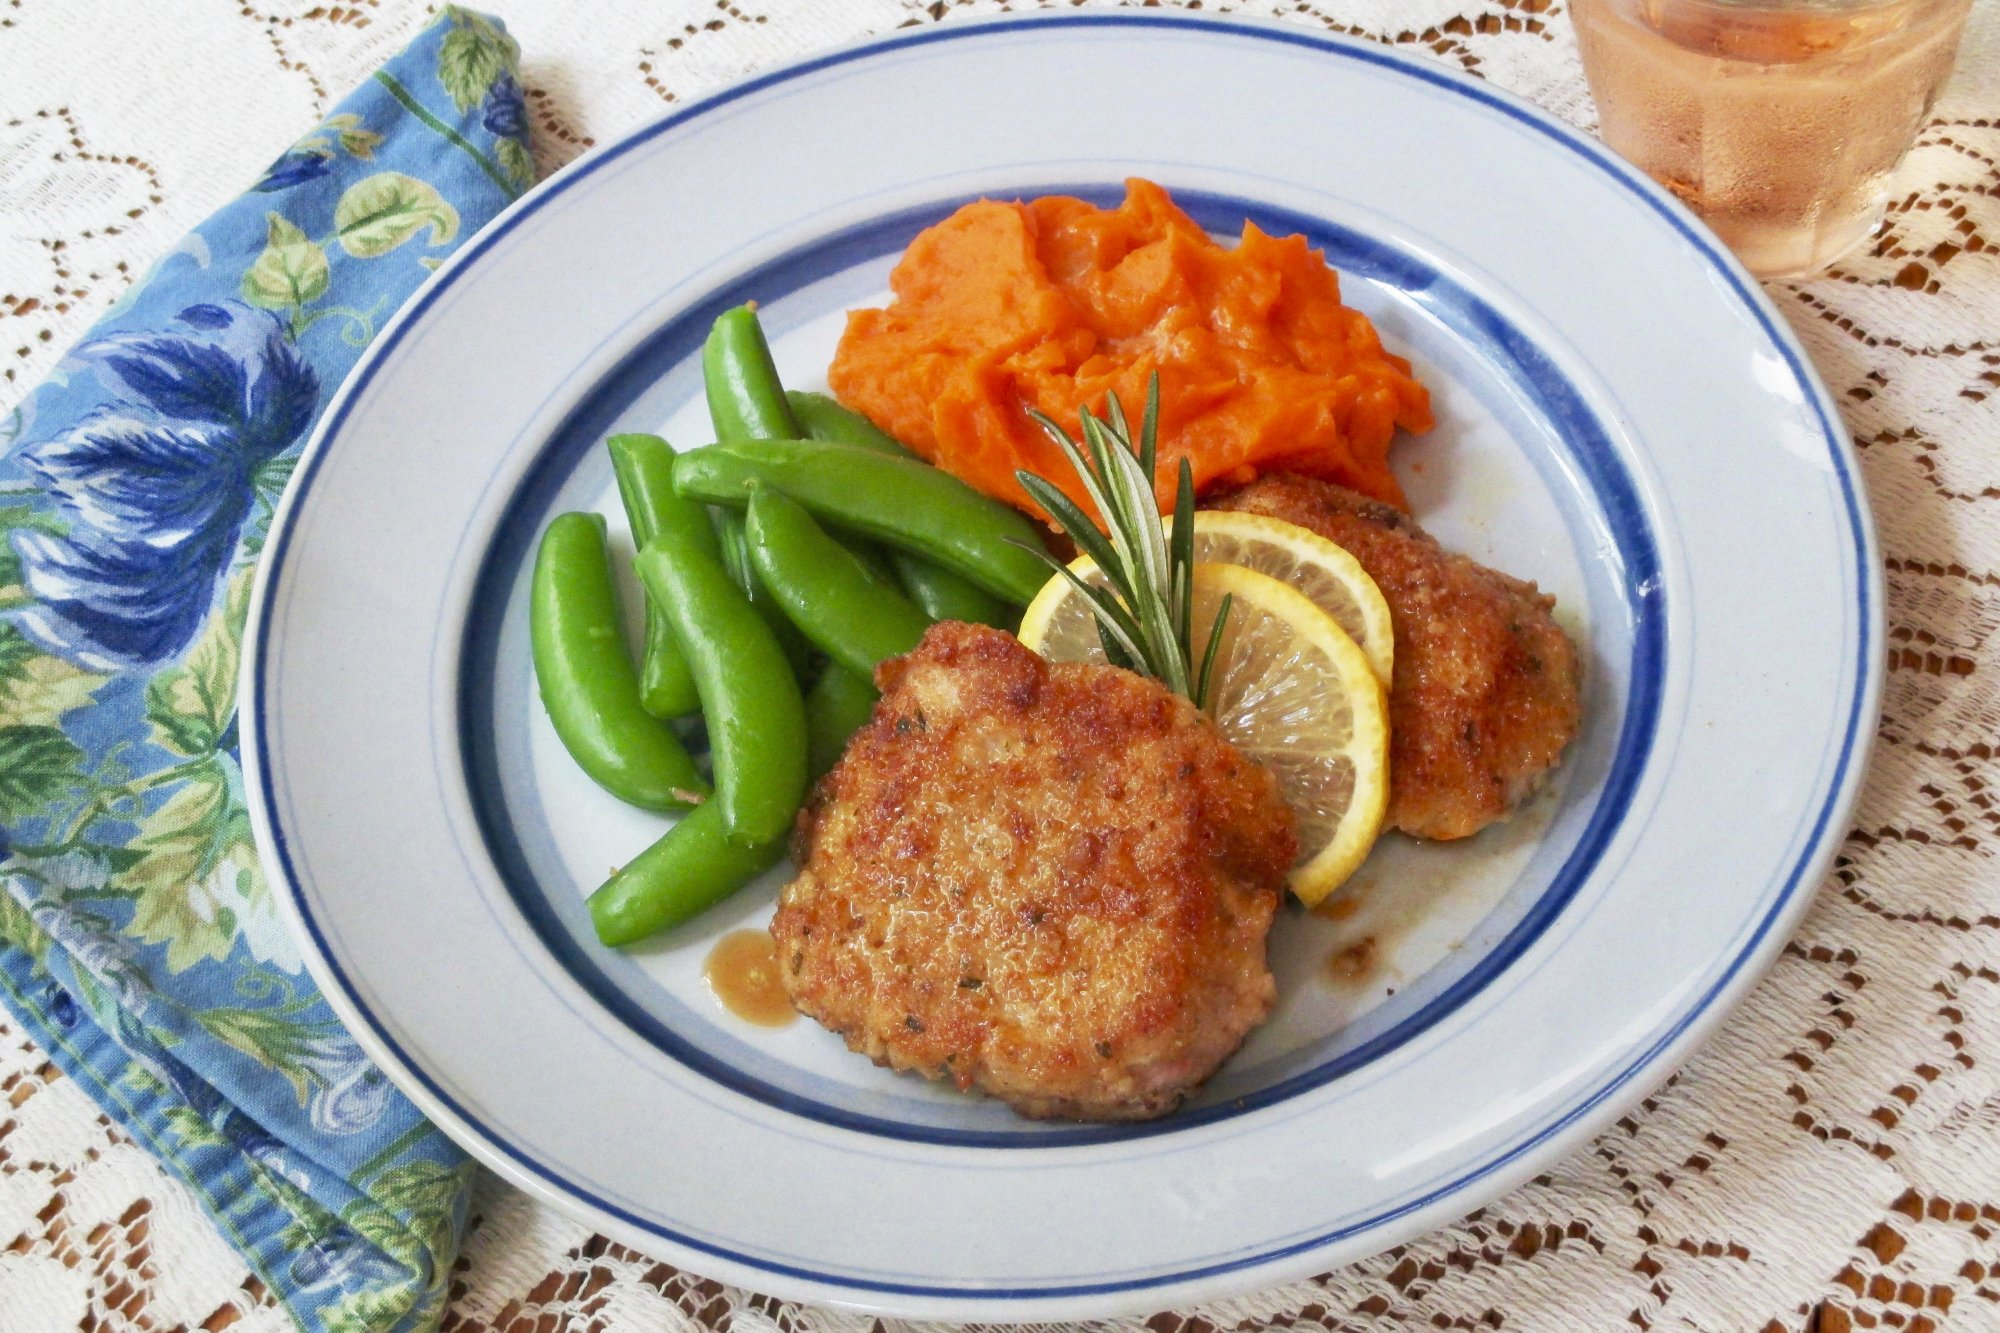 Cutlets, juicy, delicious .. how to make